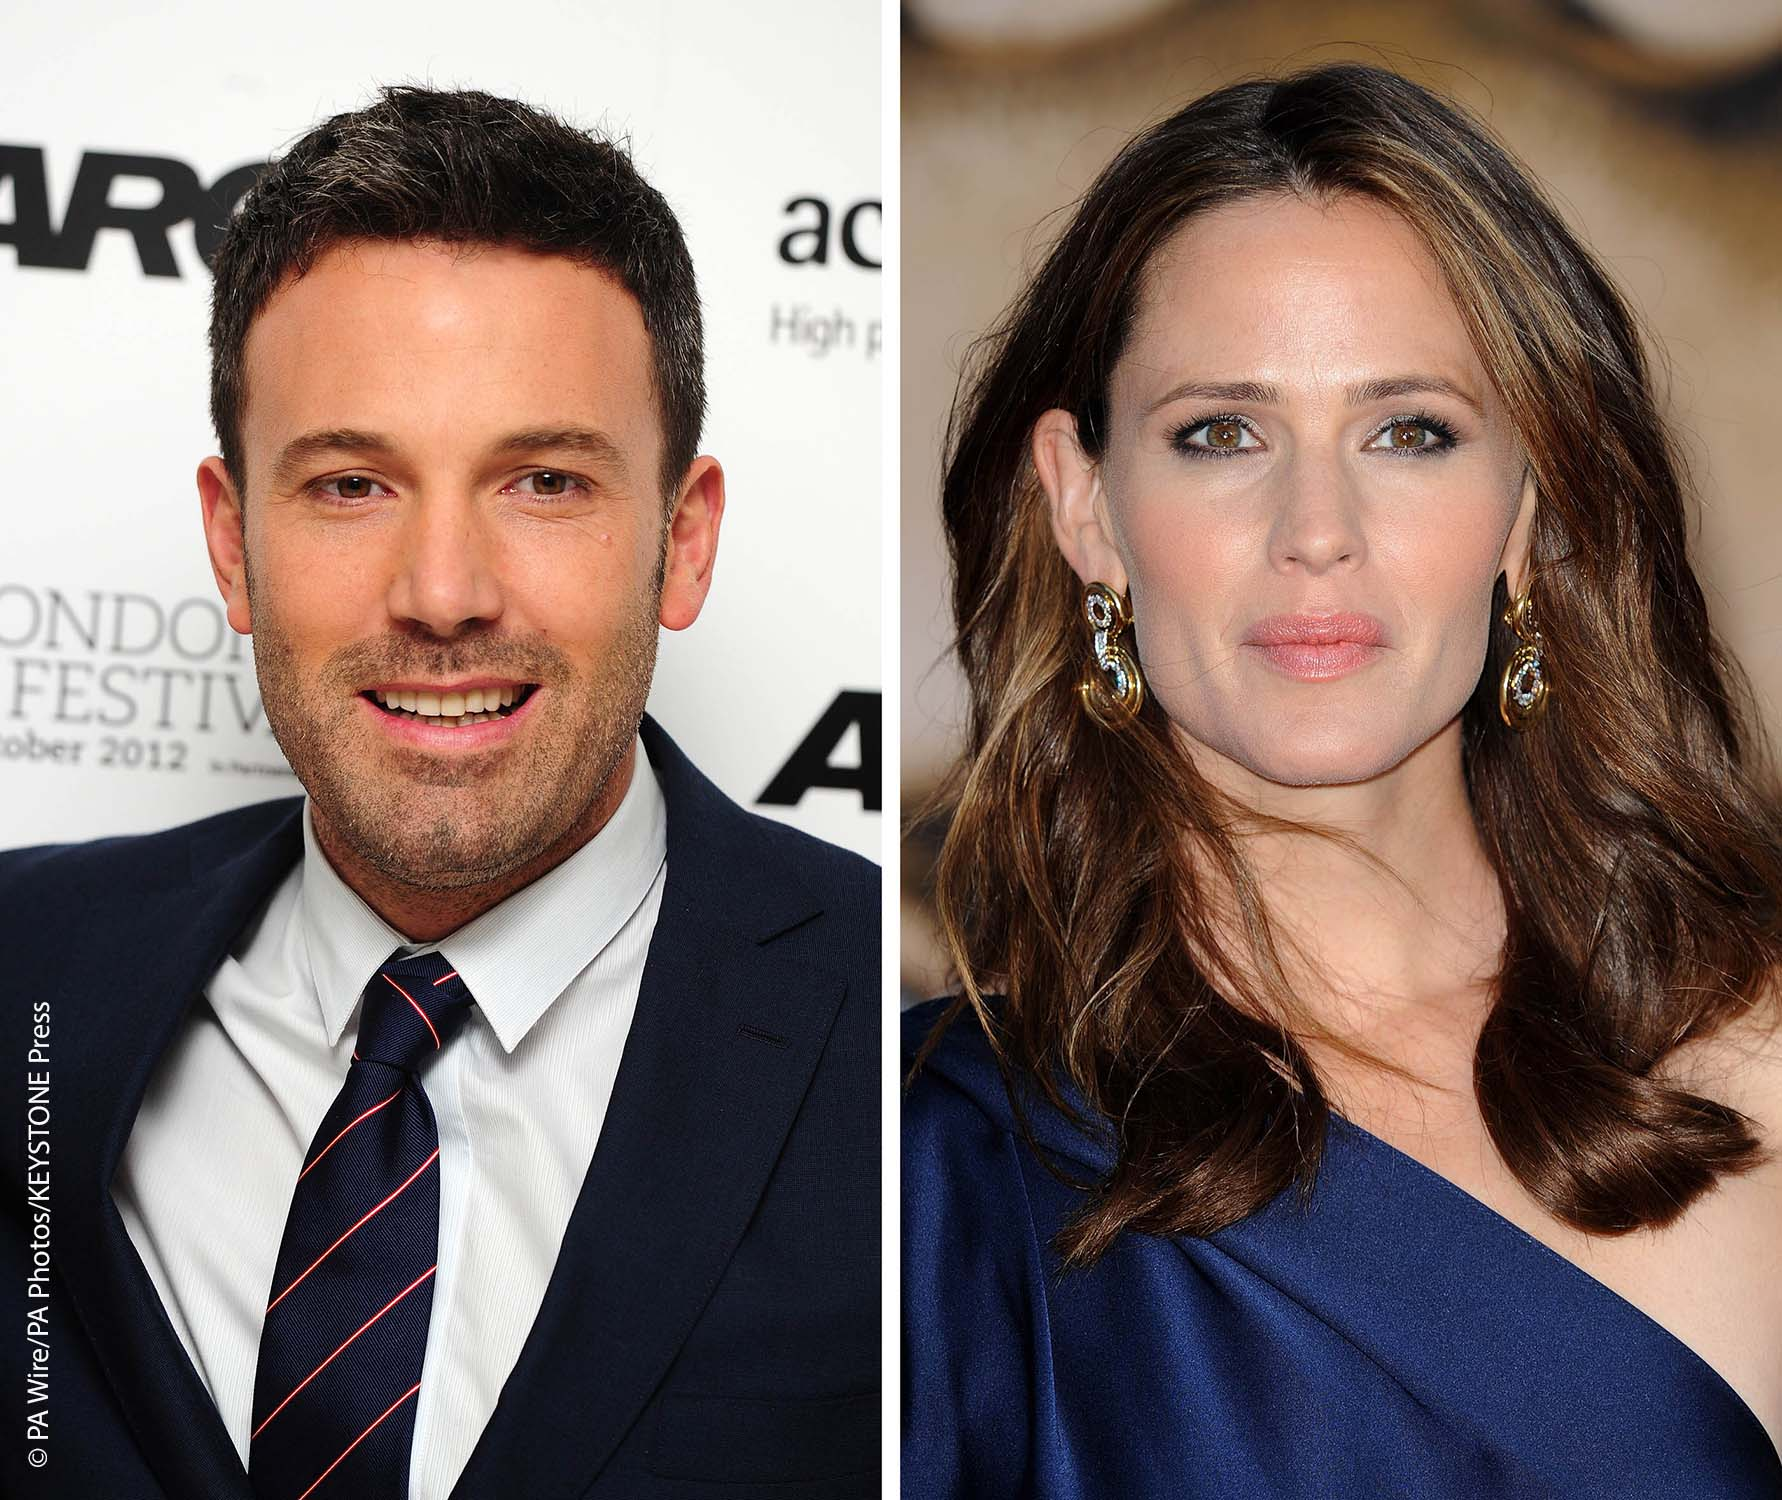 Affleck and Garner split